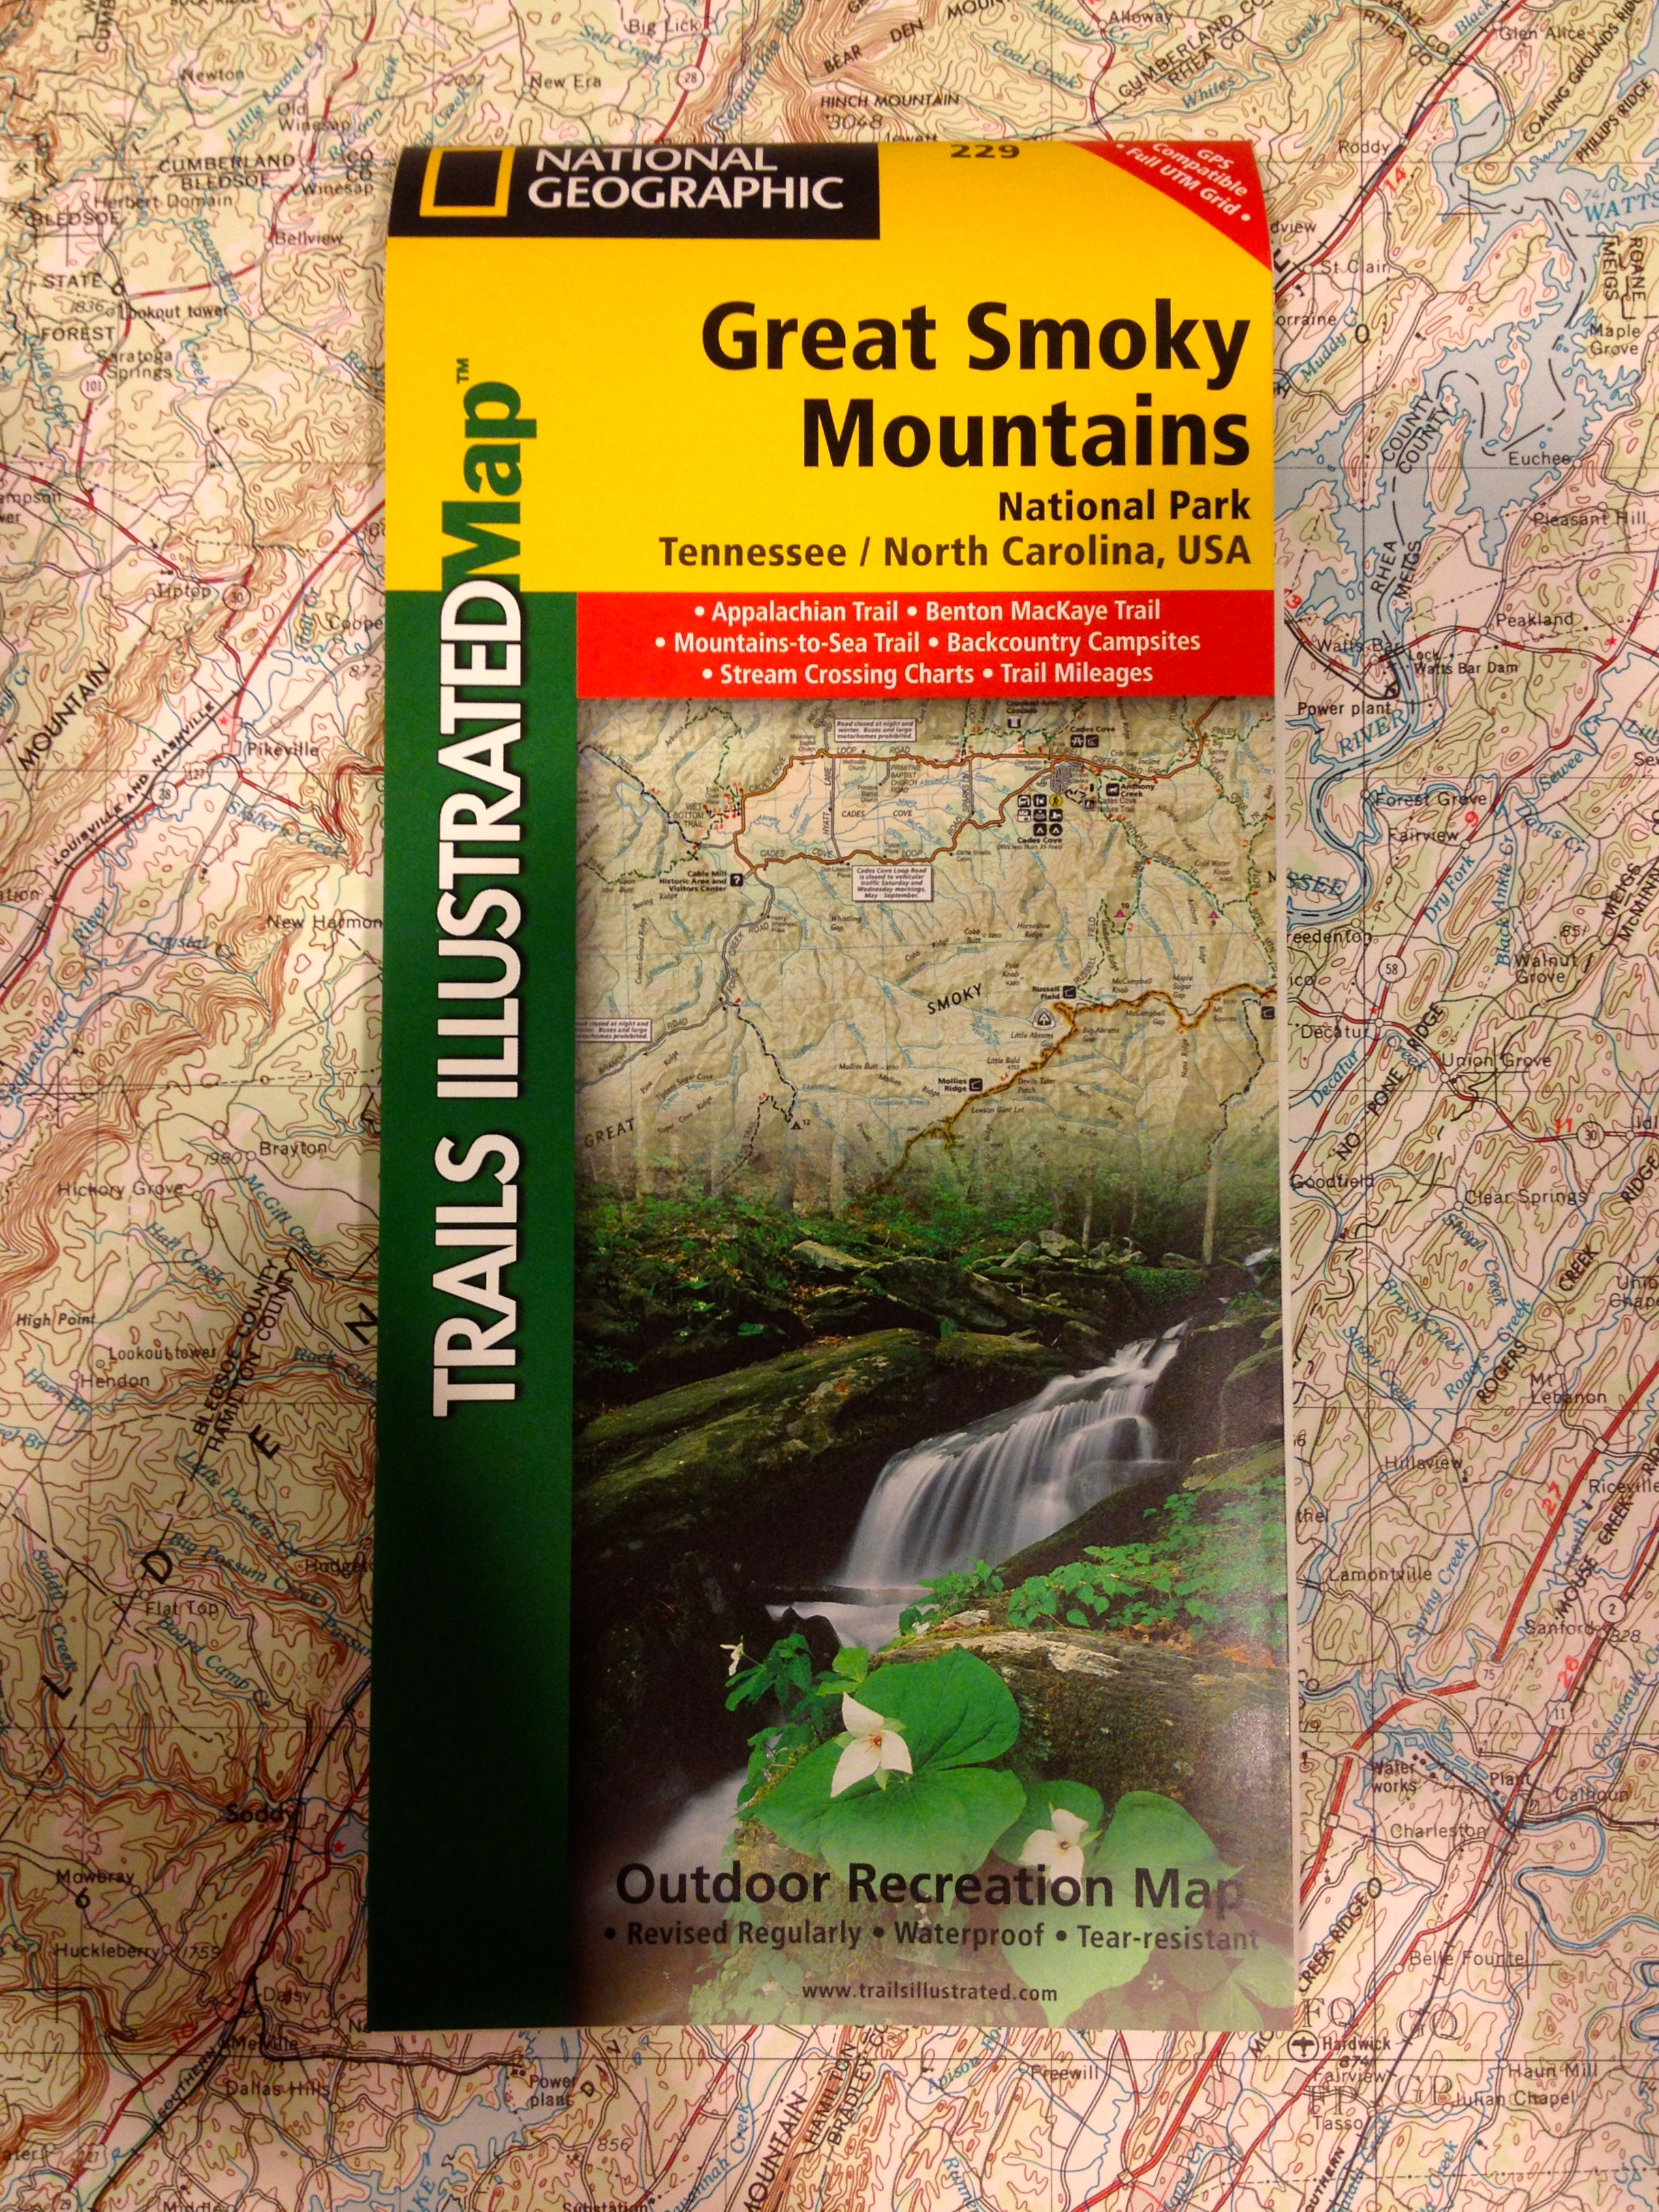 National Geographic Trails Illustrated Map - Great Smoky Mountains (229)